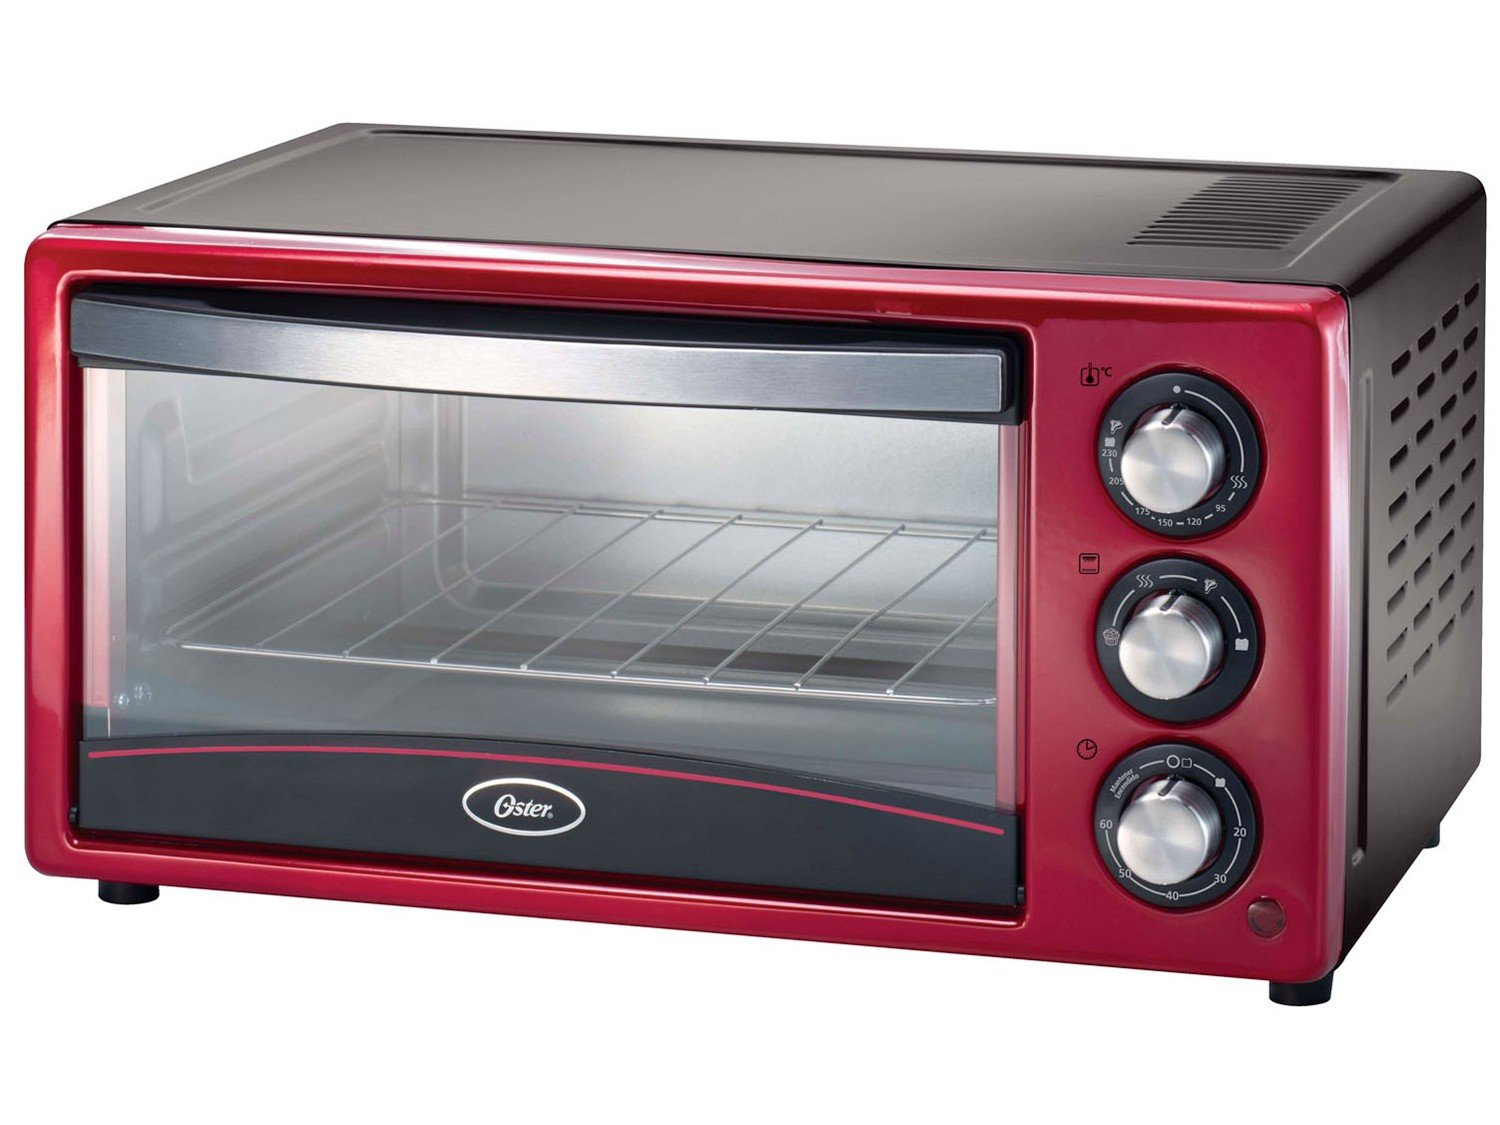 Foto 2 - Forno Elétrico Oster Convection Cook 18L Grill - Timer